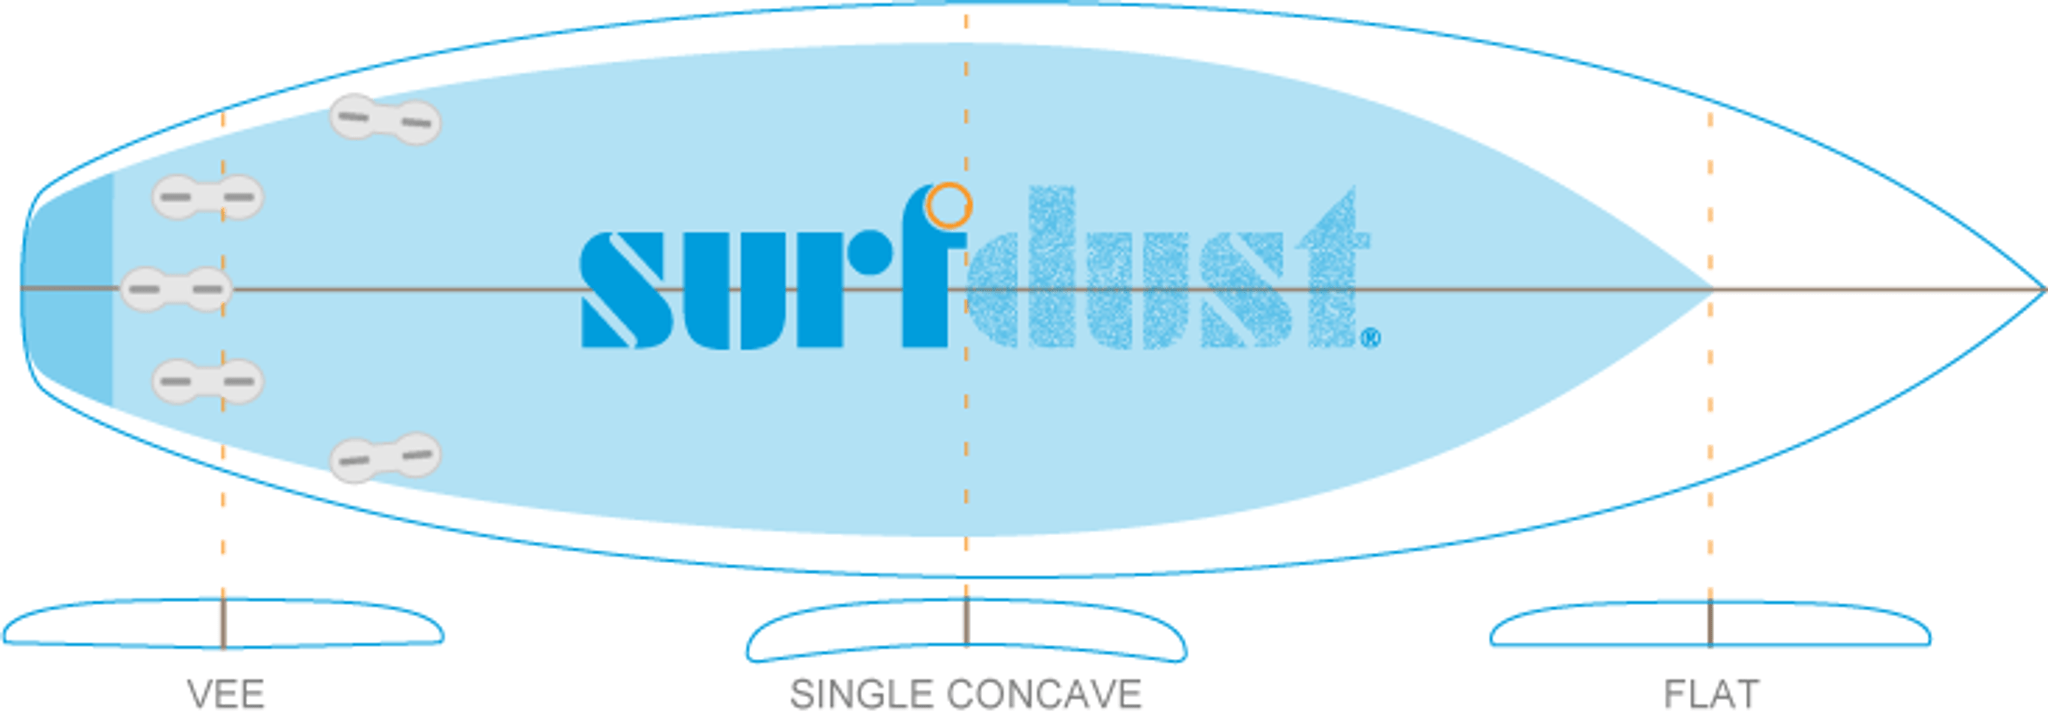 SURFDUST Concave Specification